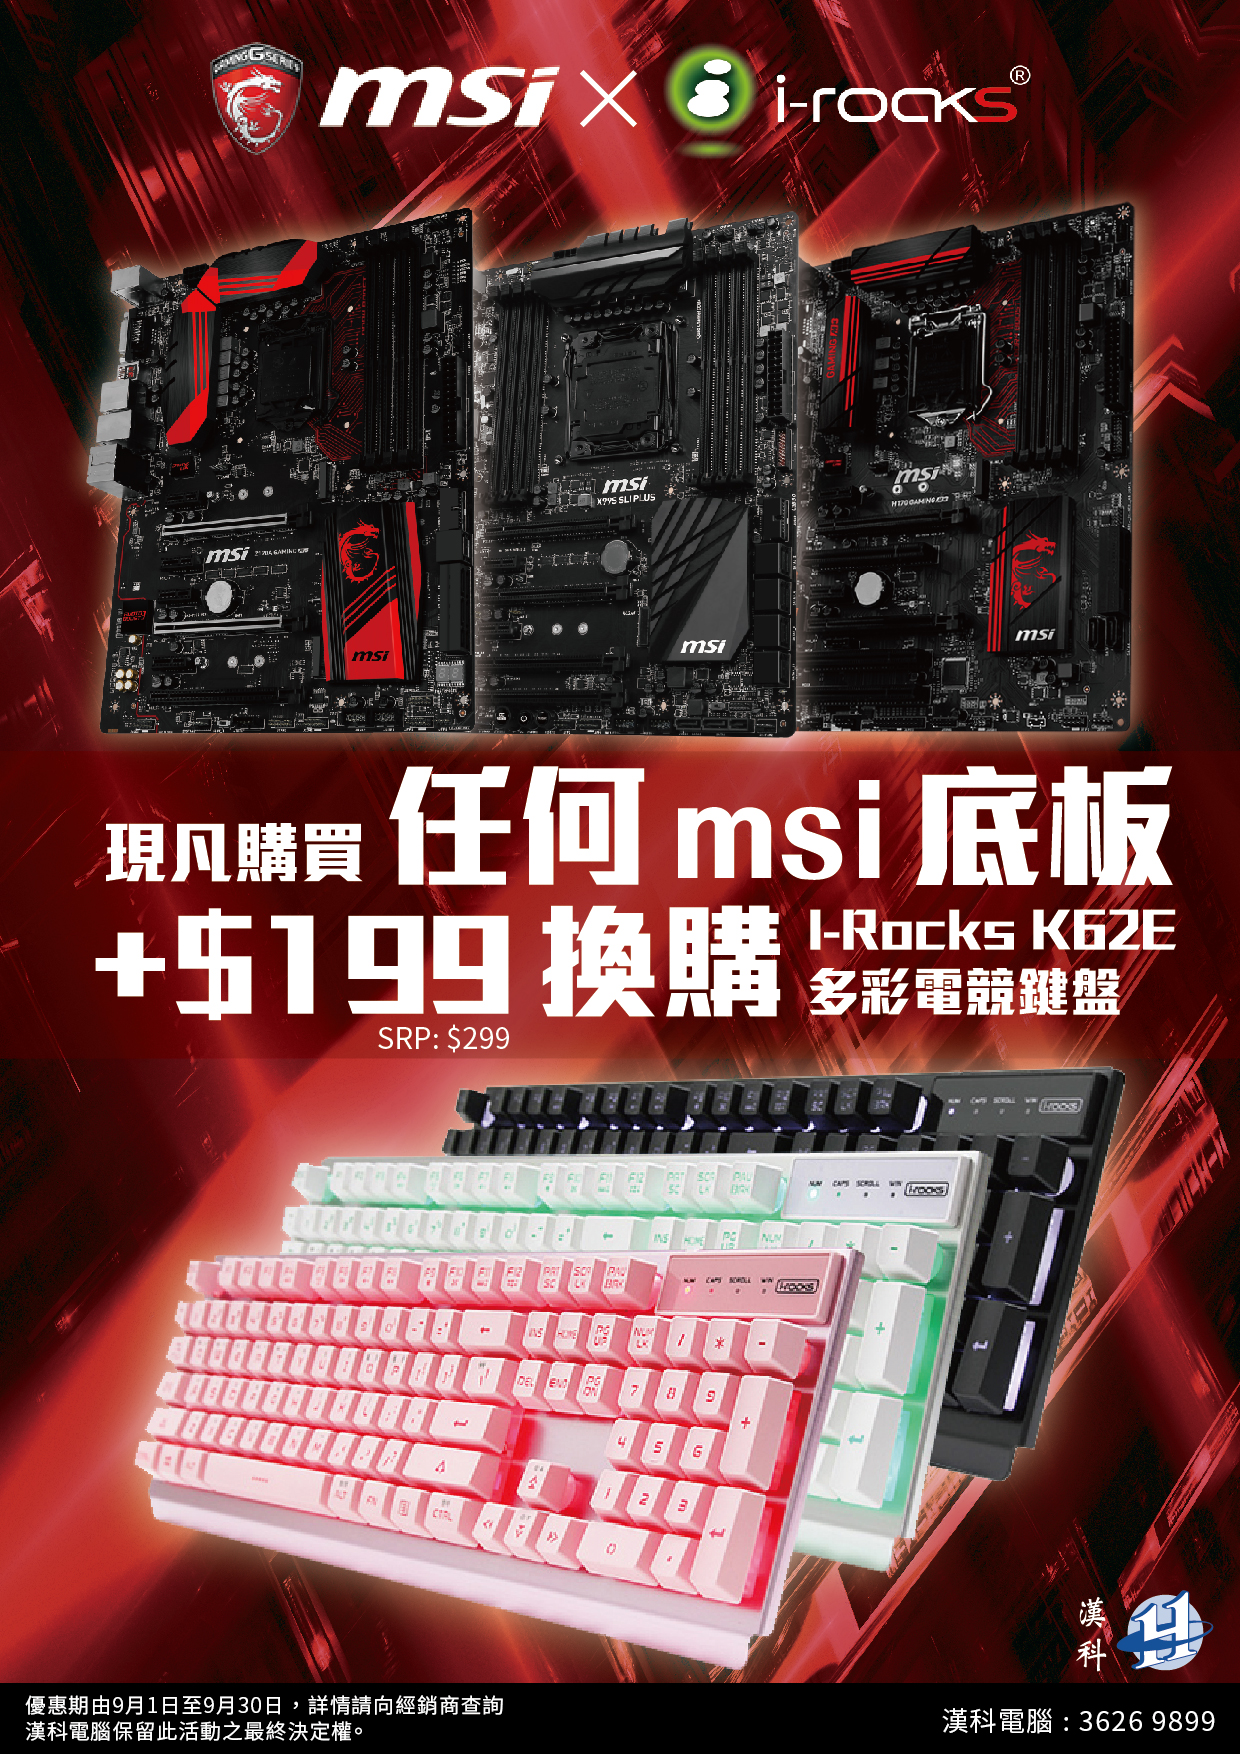 Facebook_iRocks&msi_Promotion_20160831-01